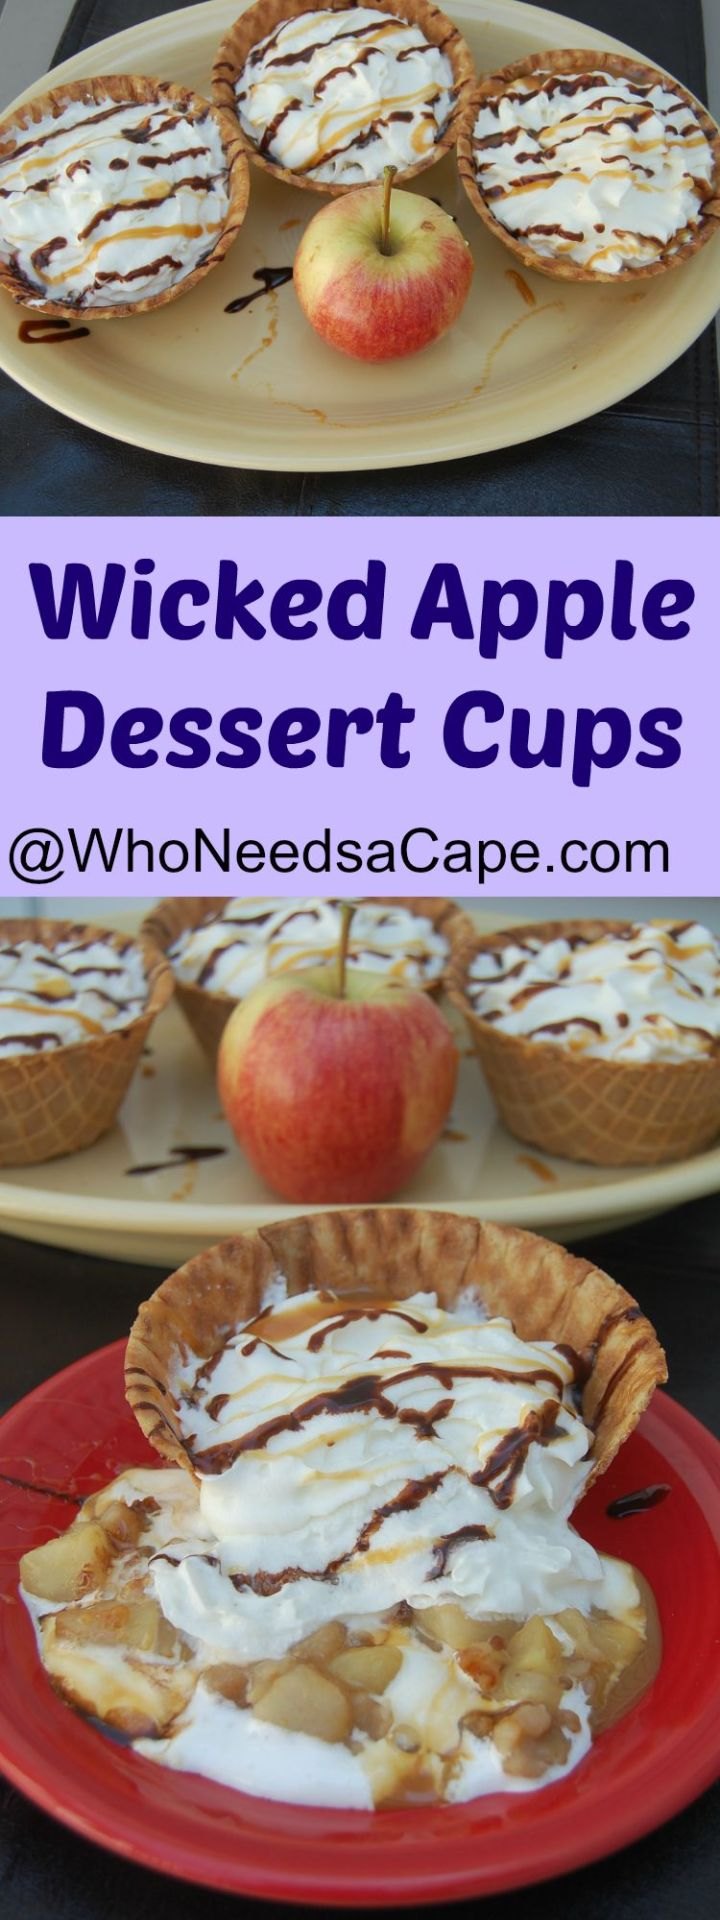 Wicked Apple Dessert Cups